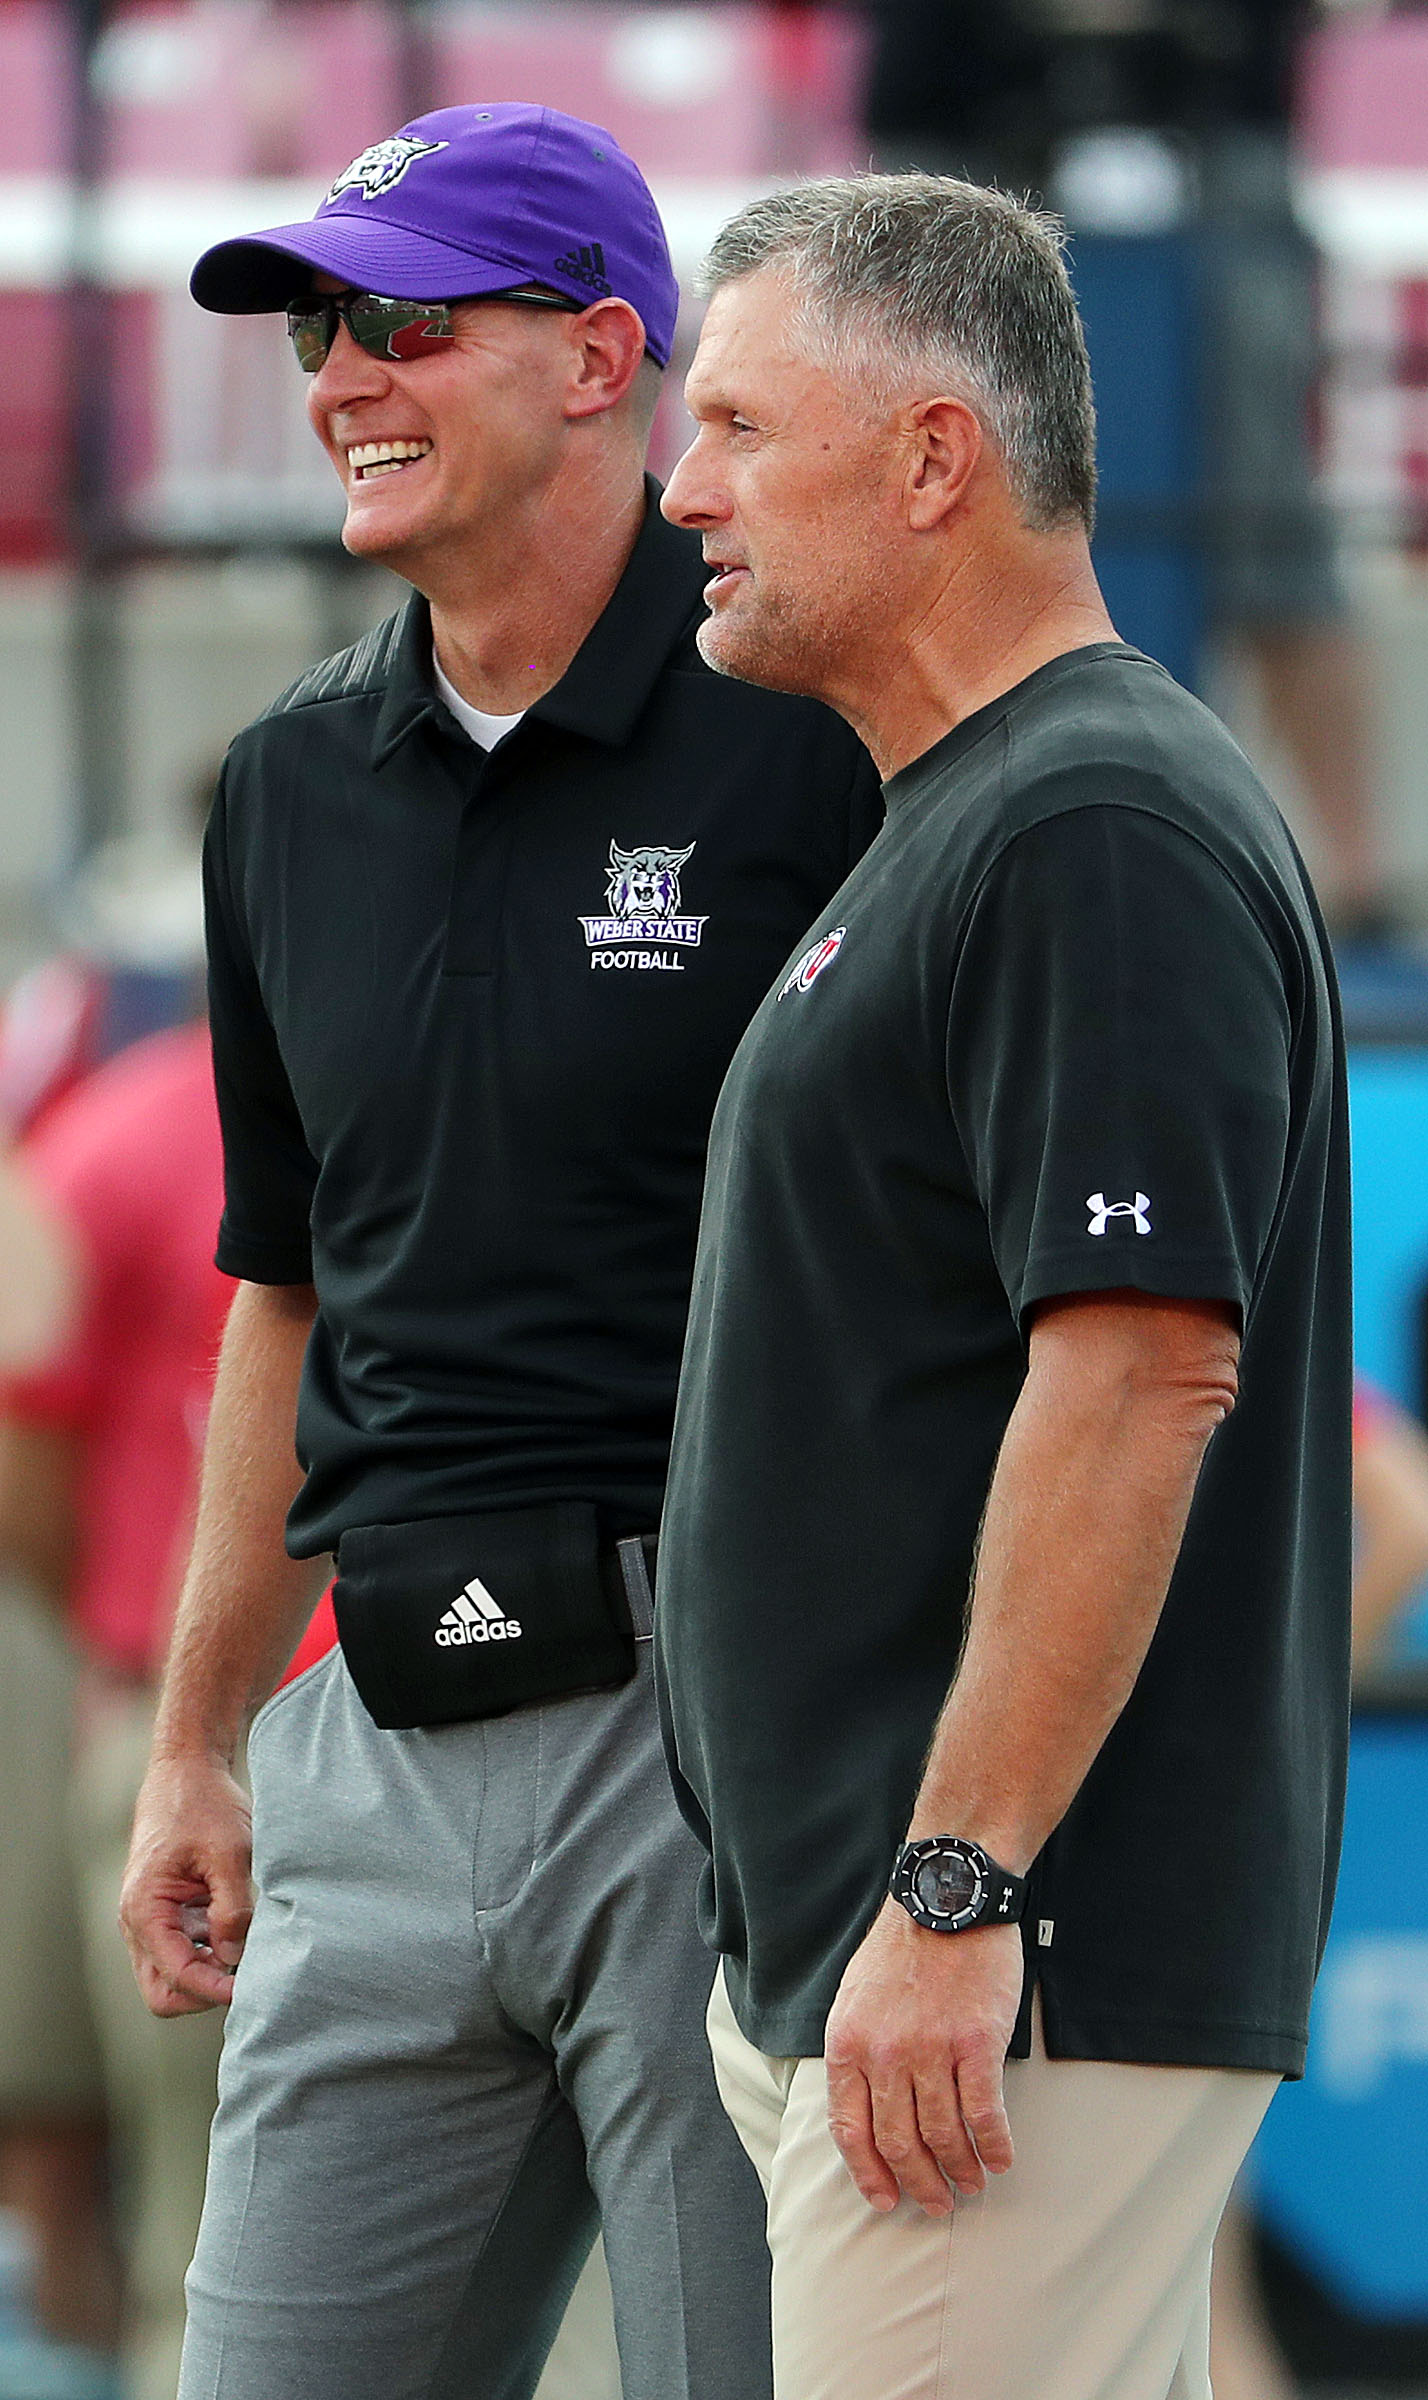 Utah Utes coach Kyle Whittingham, right, and Weber State Wildcats coach Jay Hill talk before game in Salt Lake City.